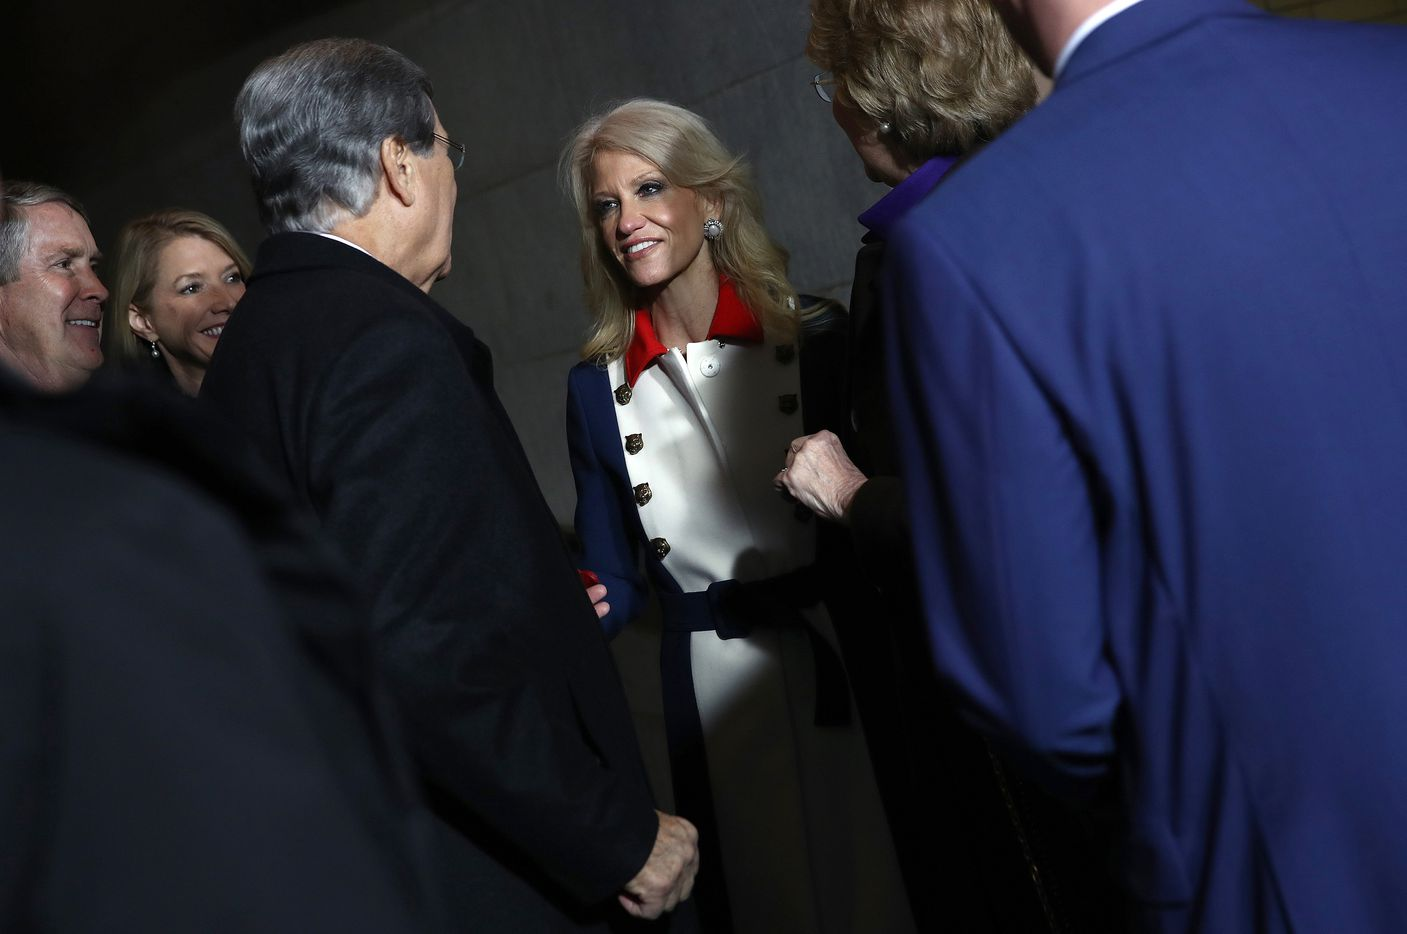 Kellyanne Conway, senior adviser to U.S. President-elect Donald Trump, center, arrives for the 58th presidential inauguration.